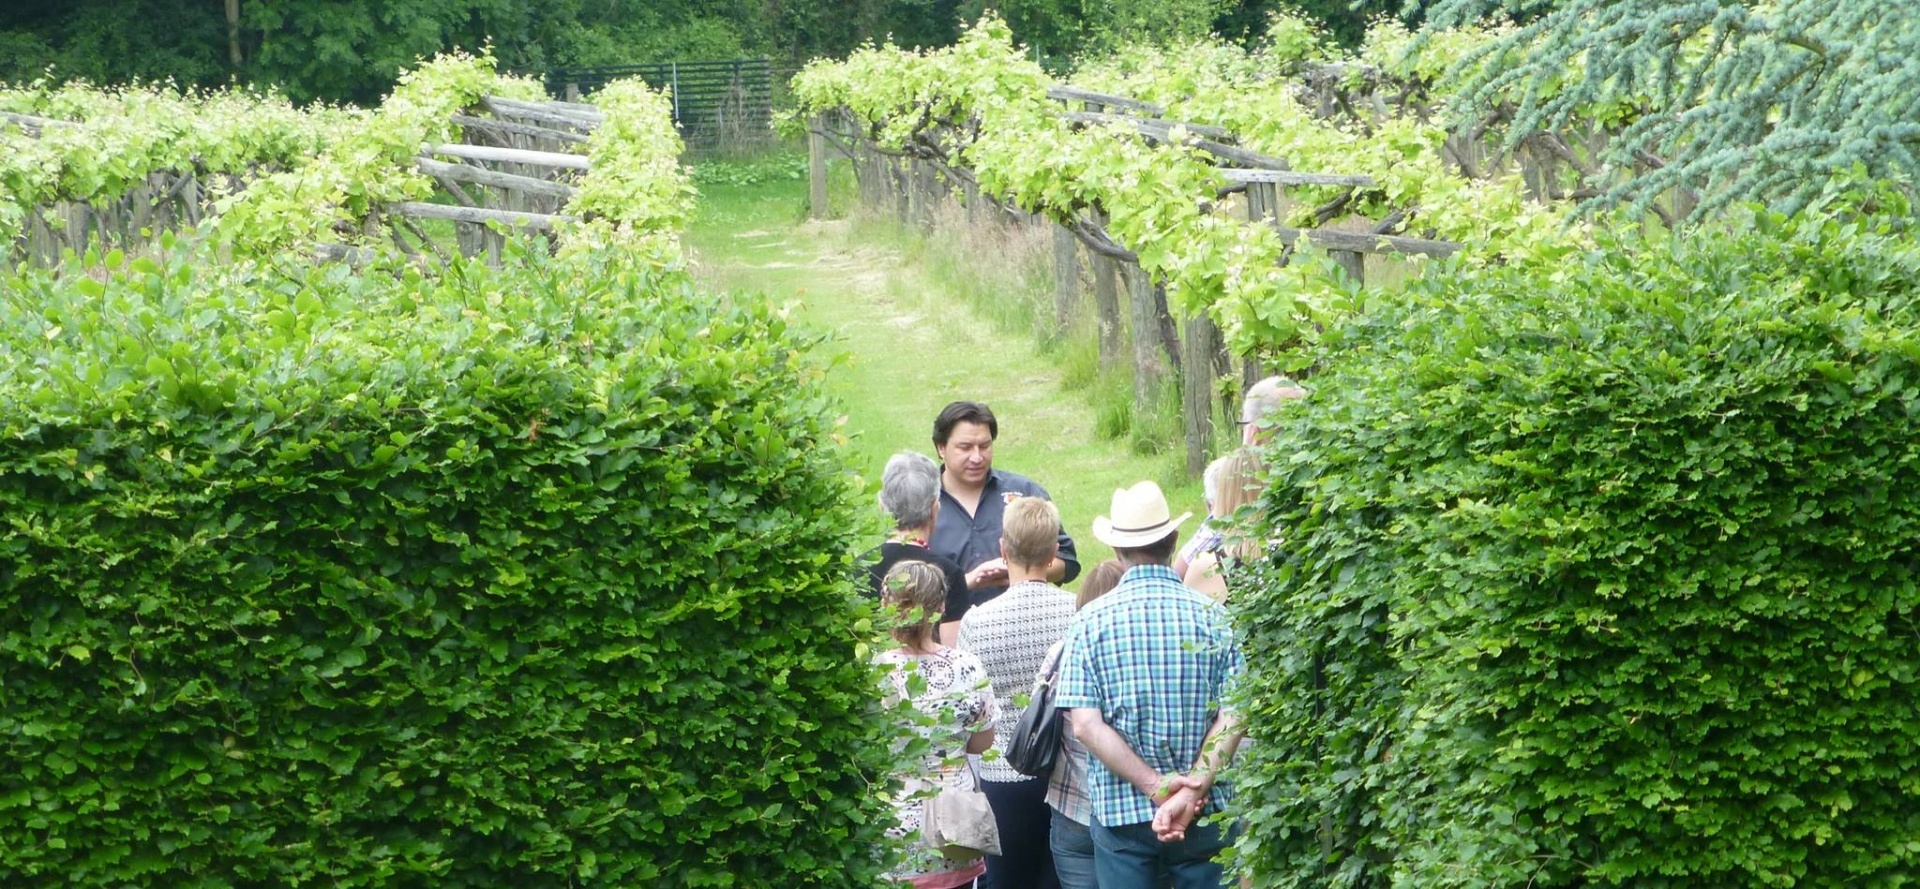 Oxfordshire Winery Tour And Wine Tasting For Two-1